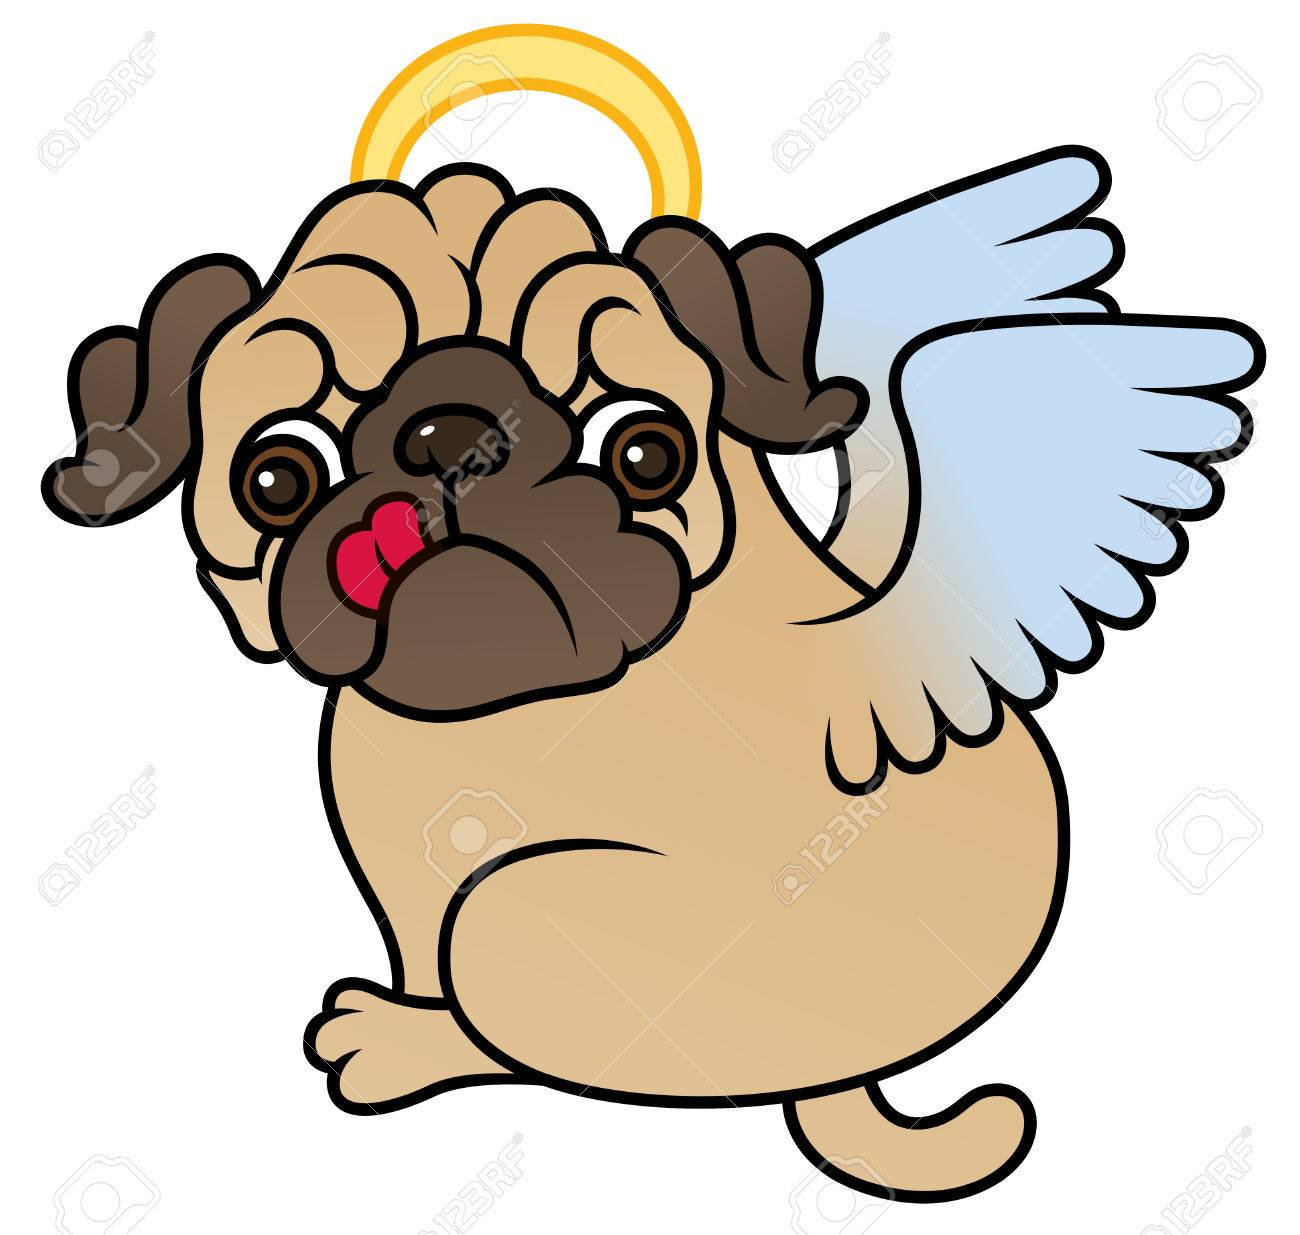 1300x1235 Free Angel Dog Clip Art Image Sweet The Graphics Fairy Wings